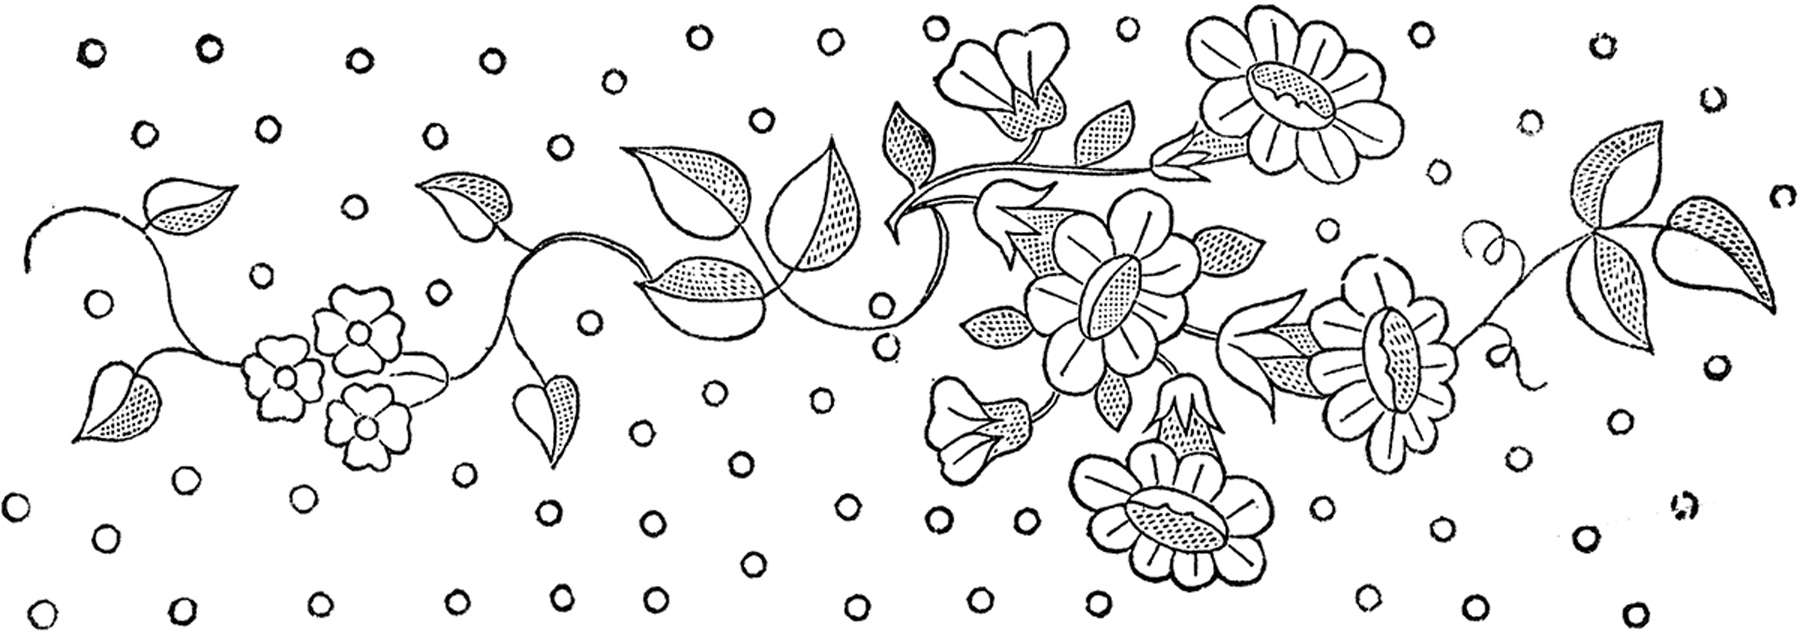 Floral Embroidery Patterns Pretty The Graphics Fairy